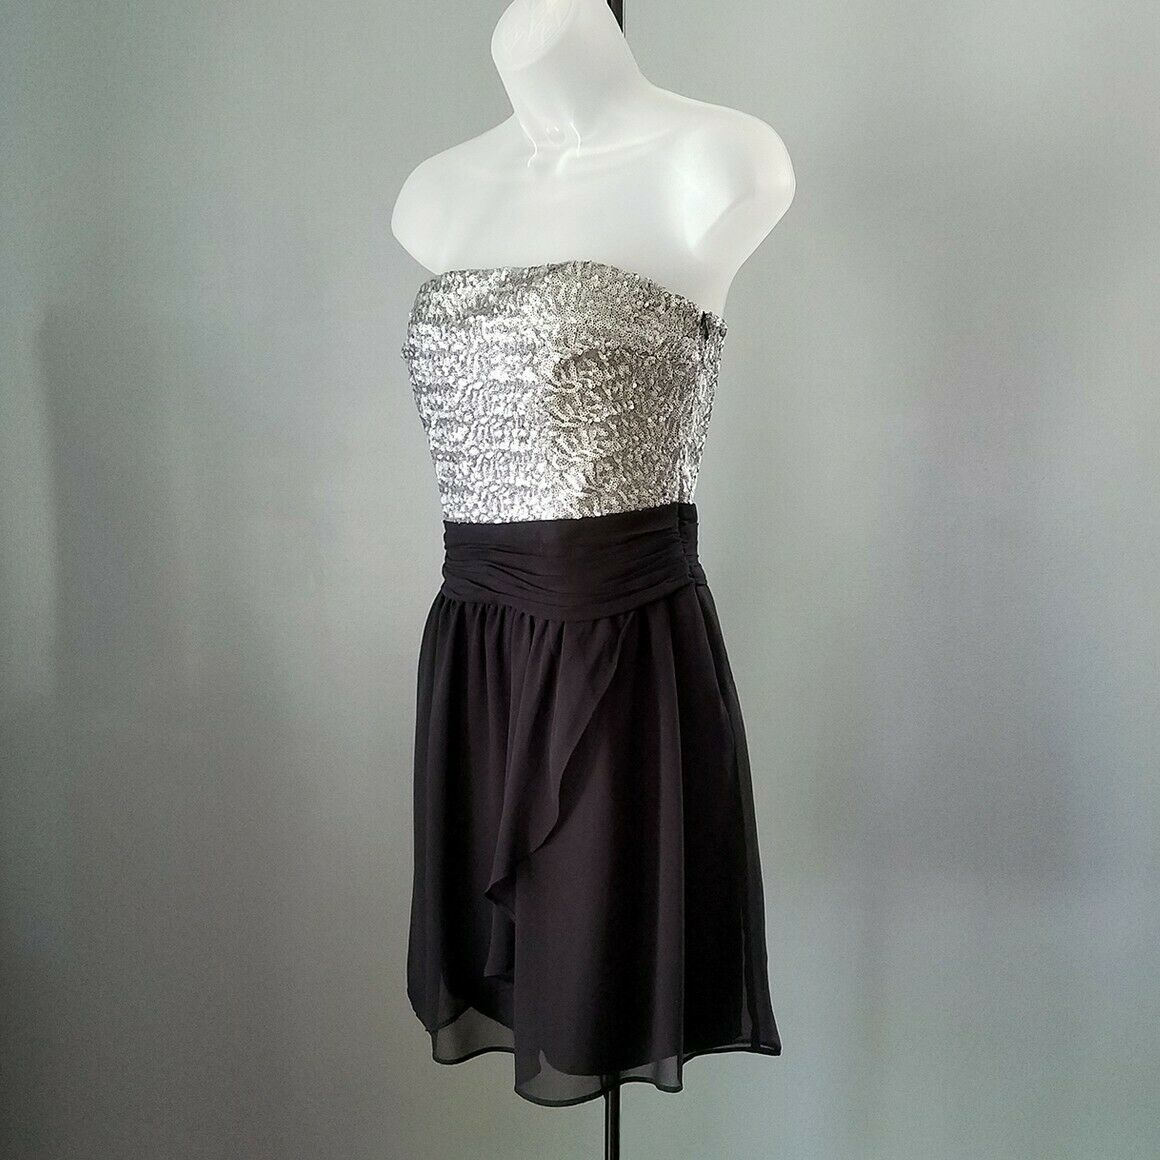 Express Silver & Black Sequin Strapless Cocktail Dress Size 6 image 4